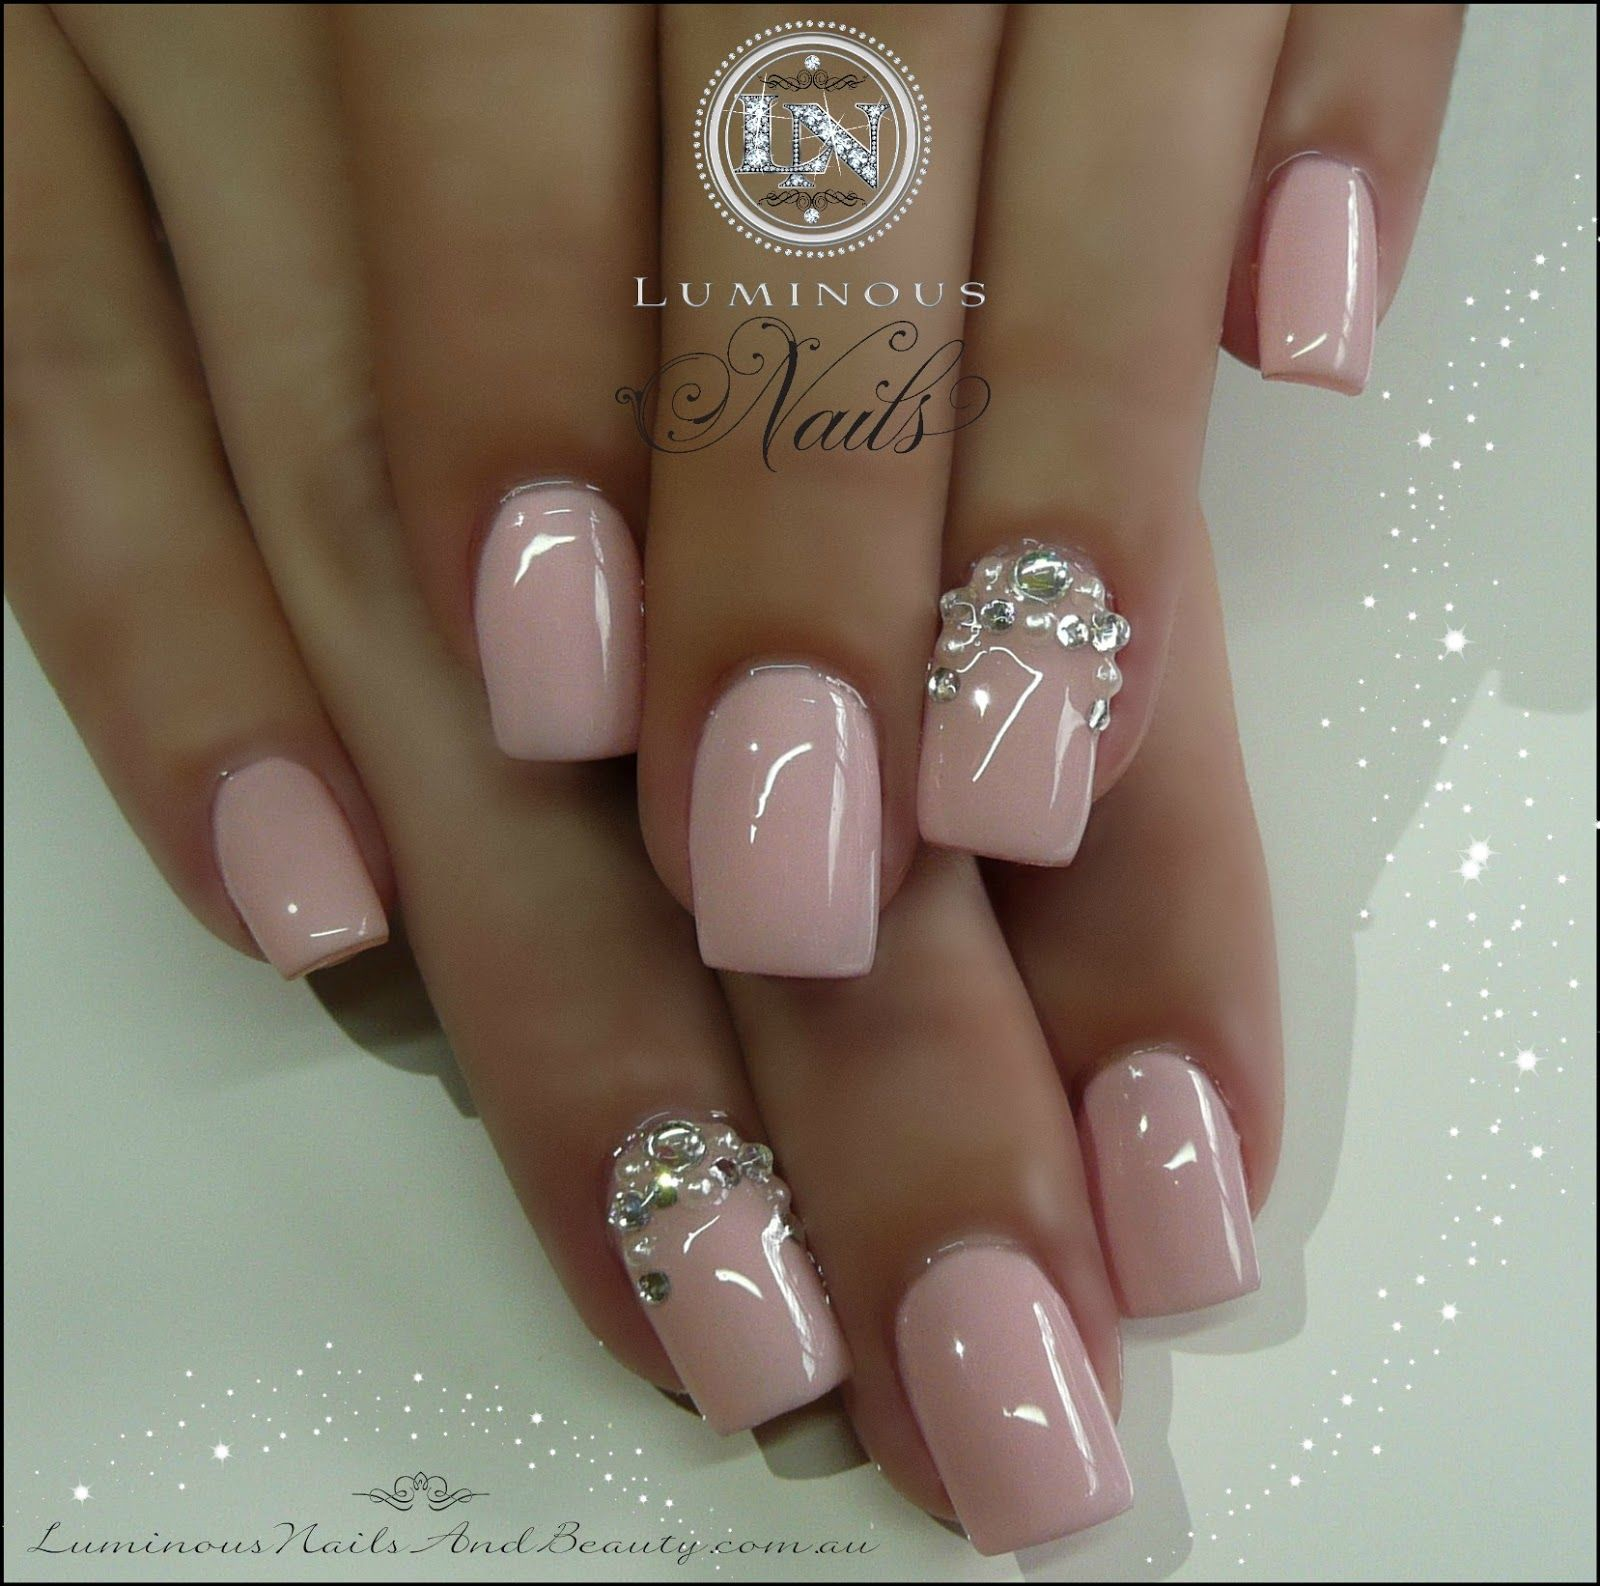 Luminous+Nails+And+Beauty,+Gold+Coast+Queensland.+Acrylic+&+Gel+ ...